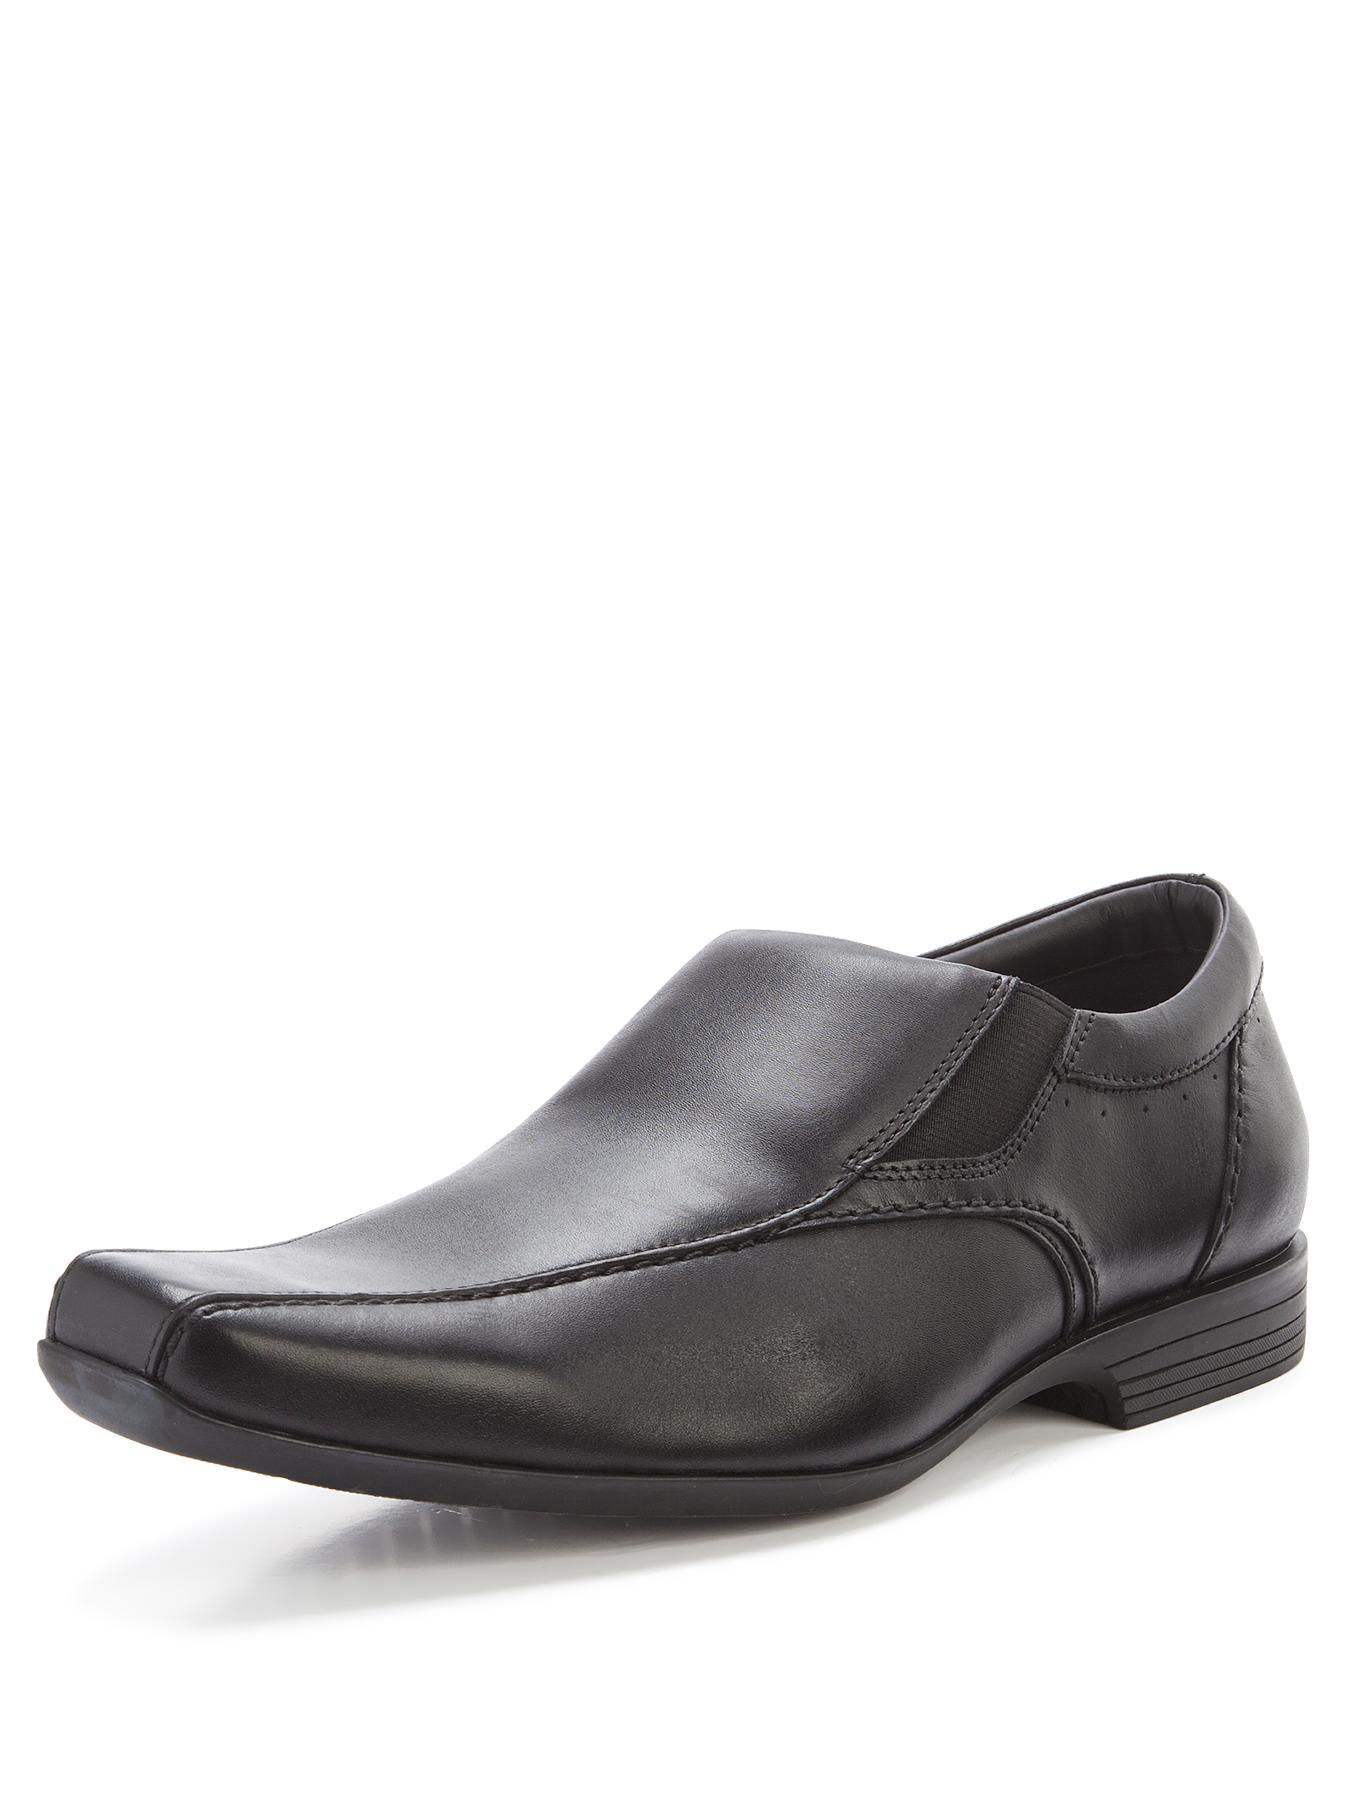 Forbes Step Slip On Shoes, Black